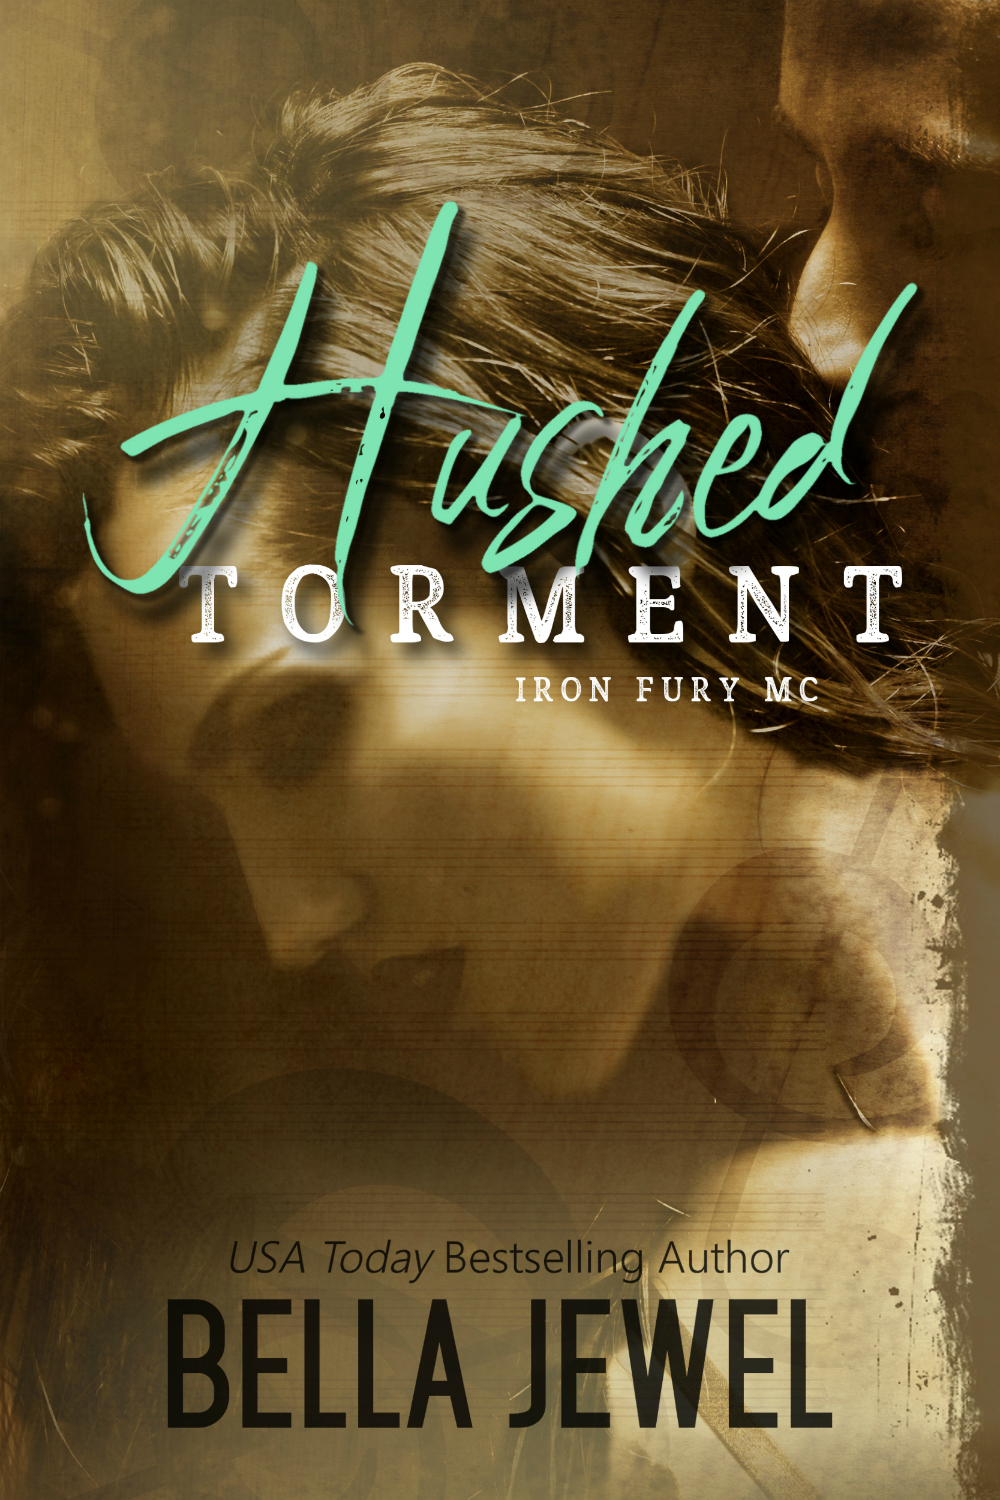 Hushed Torment by Bella Jewel